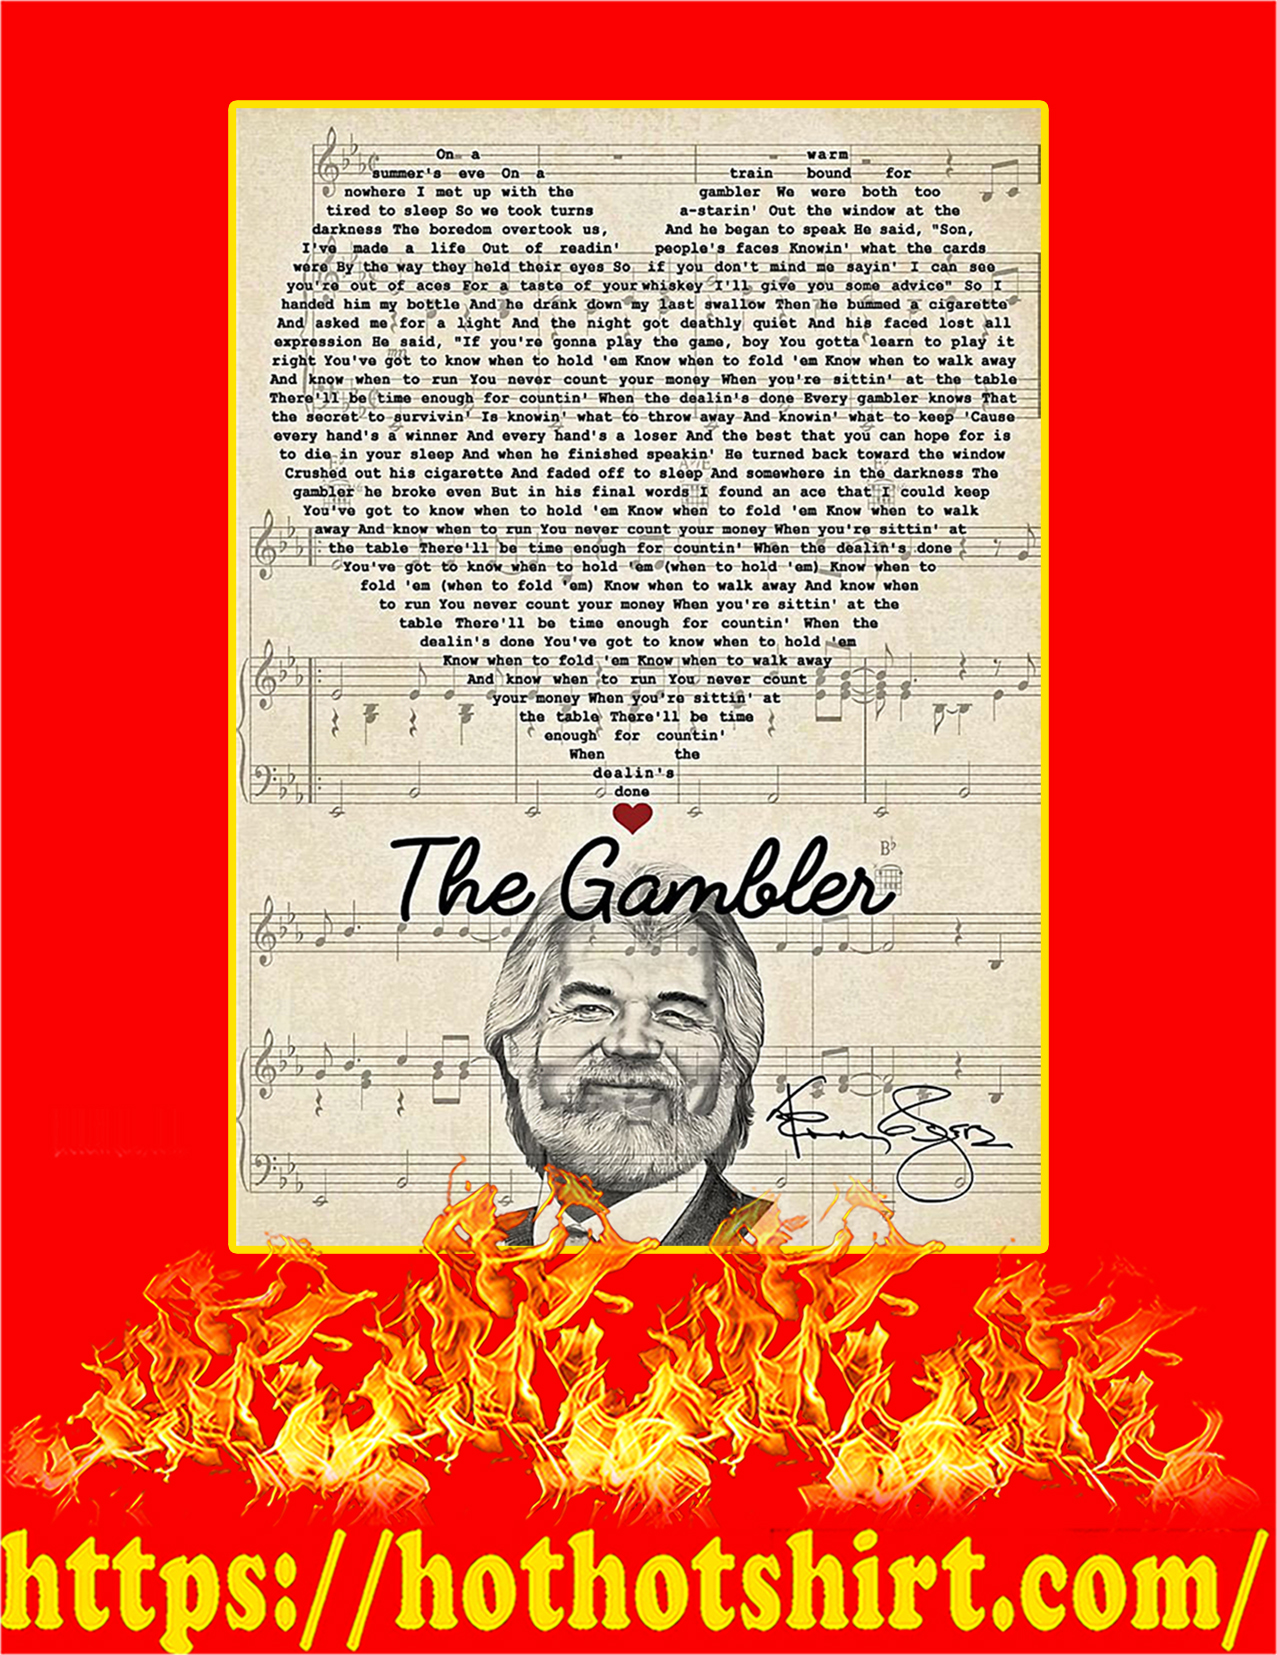 The Gambler Kenny Rogers Signature Poster - A2